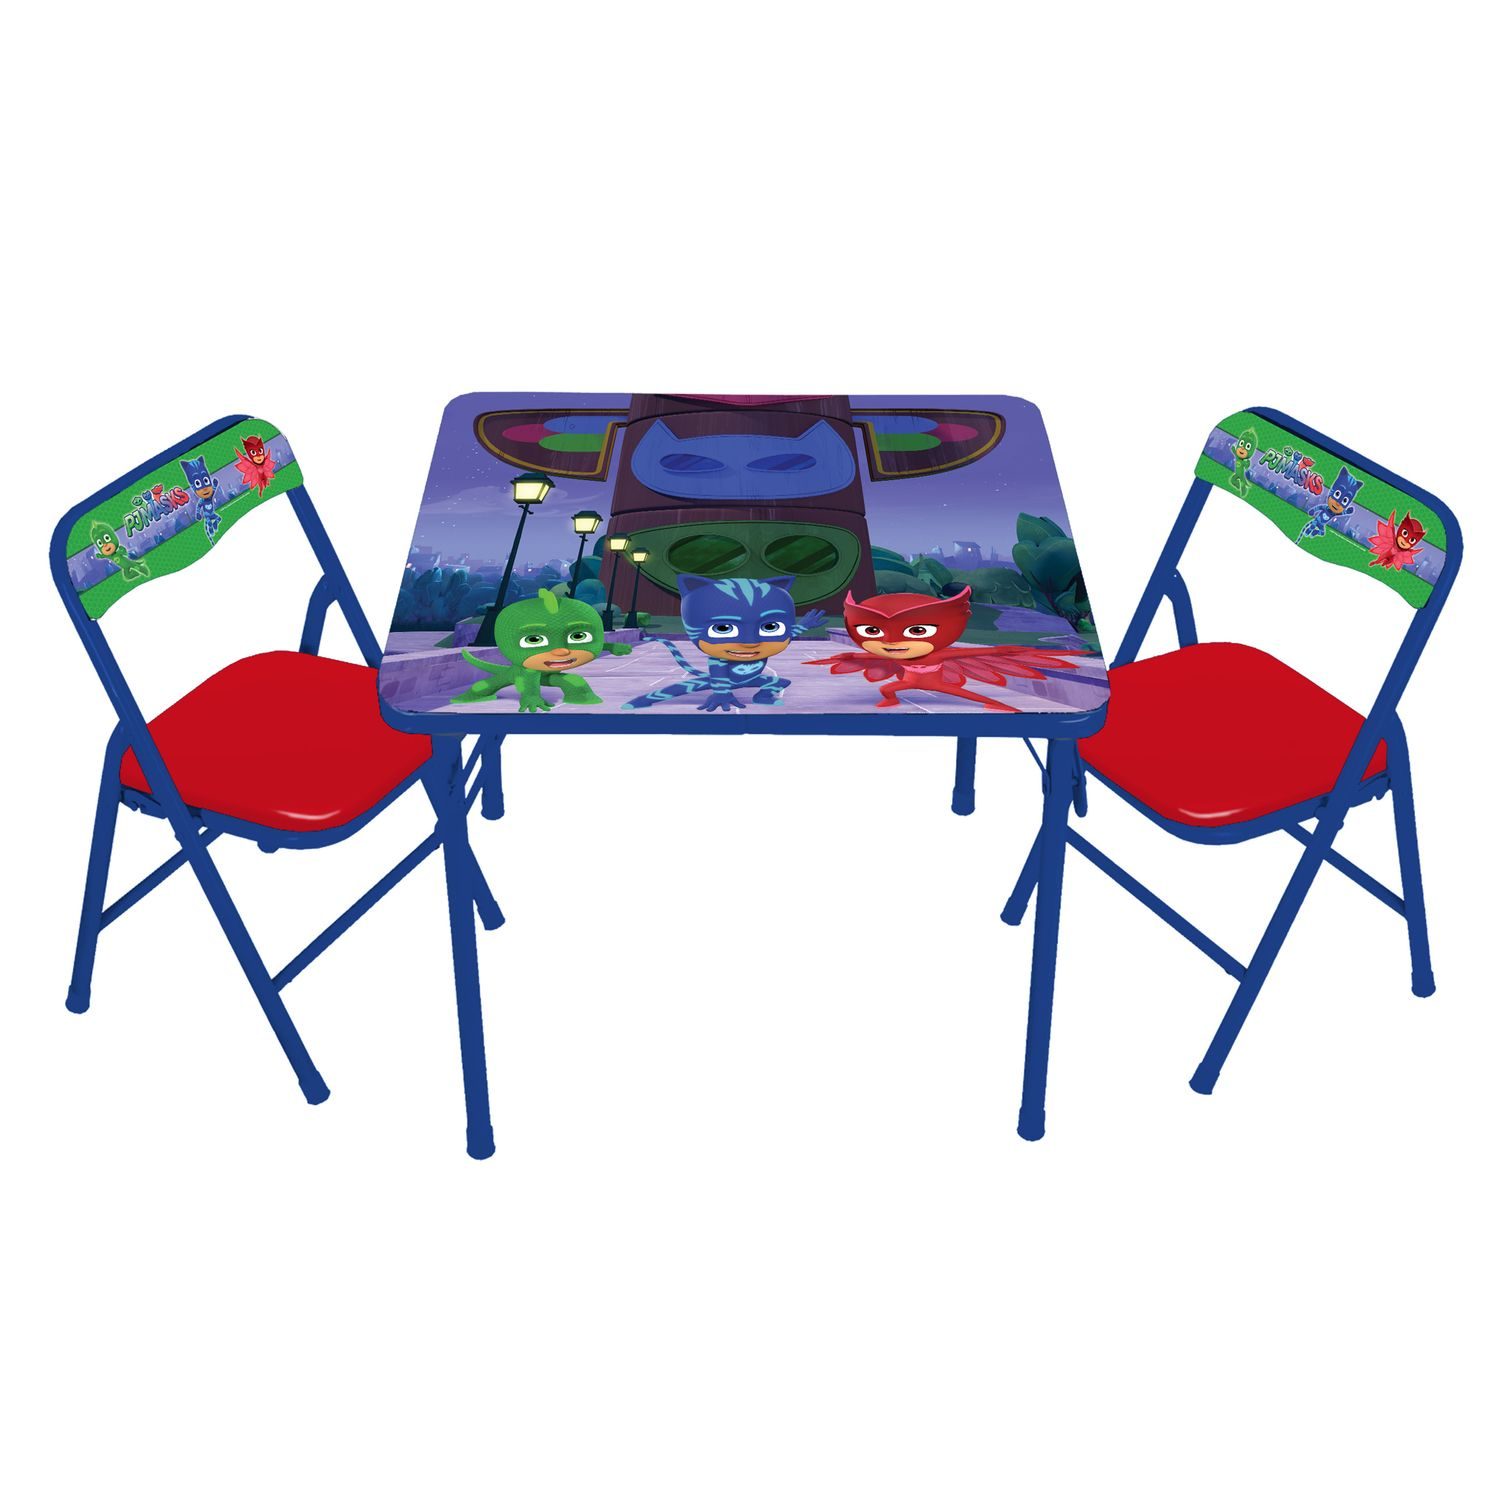 sc 1 st  Kohlu0027s & PJ Masks Activity Table u0026 Chairs Set